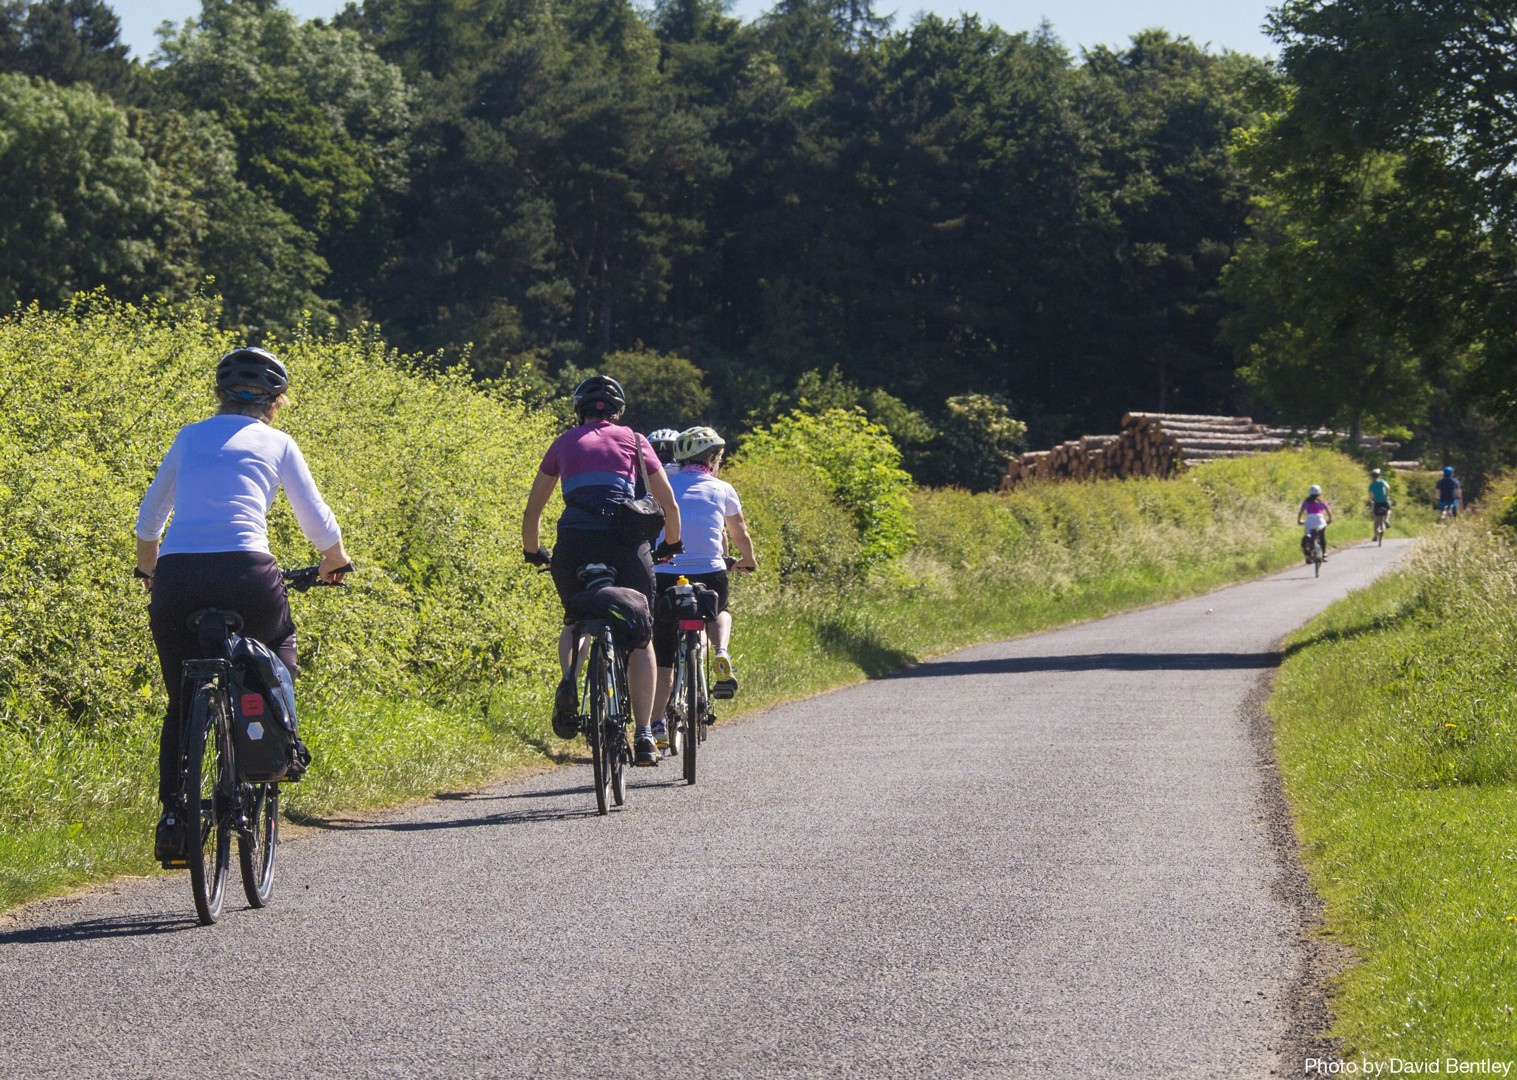 Cycle-Hadrians-Wall-UK-Hadrians-Cycleway-Supported-Leisure-Cycling-Holiday.jpg - UK - Hadrian's Cycleway - Supported Leisure Cycling Holiday - Leisure Cycling